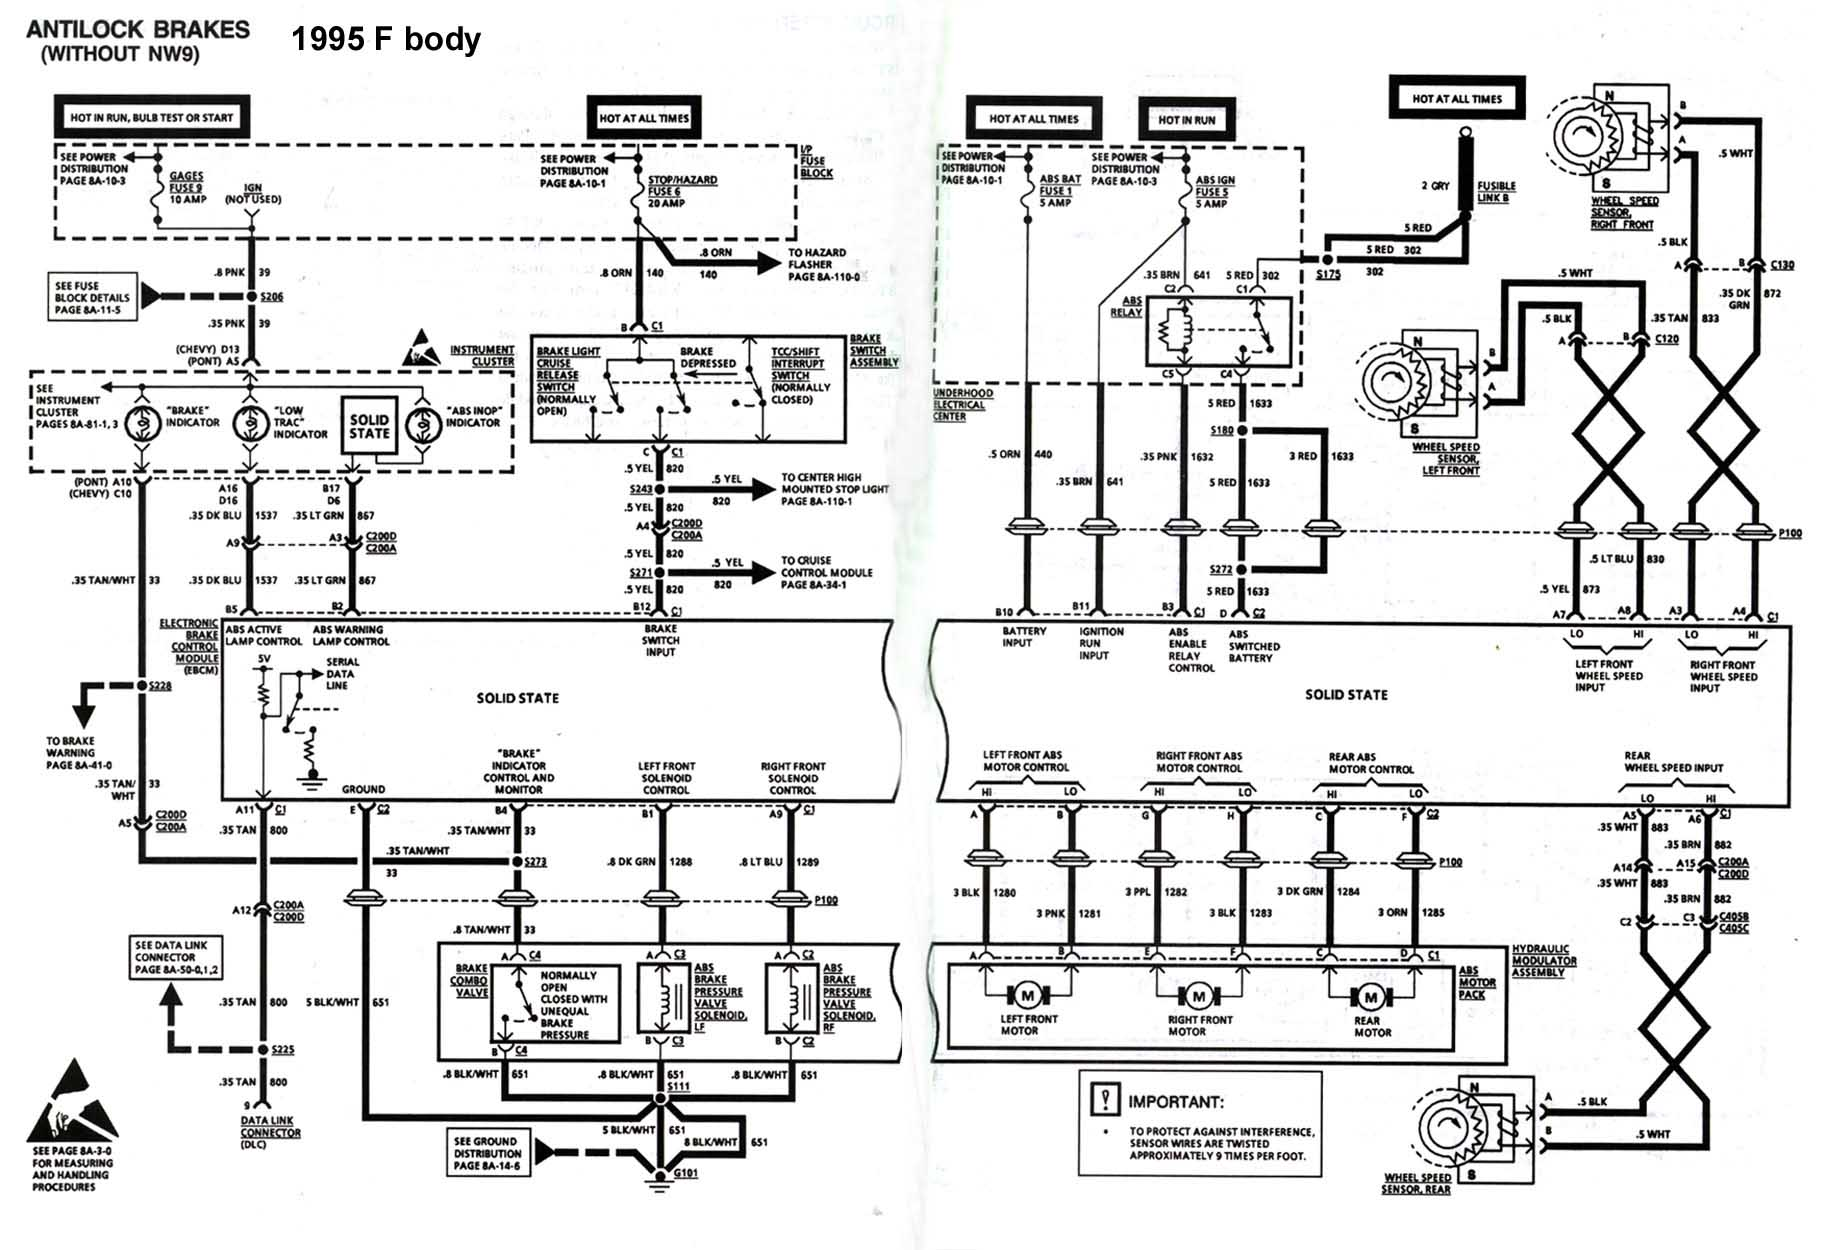 2005 buick rendezvous abs wiring diagram wiring diagram 2004 Buick Rendezvous Fuse Diagram abs wiring diagram 2005 buick rendezvous